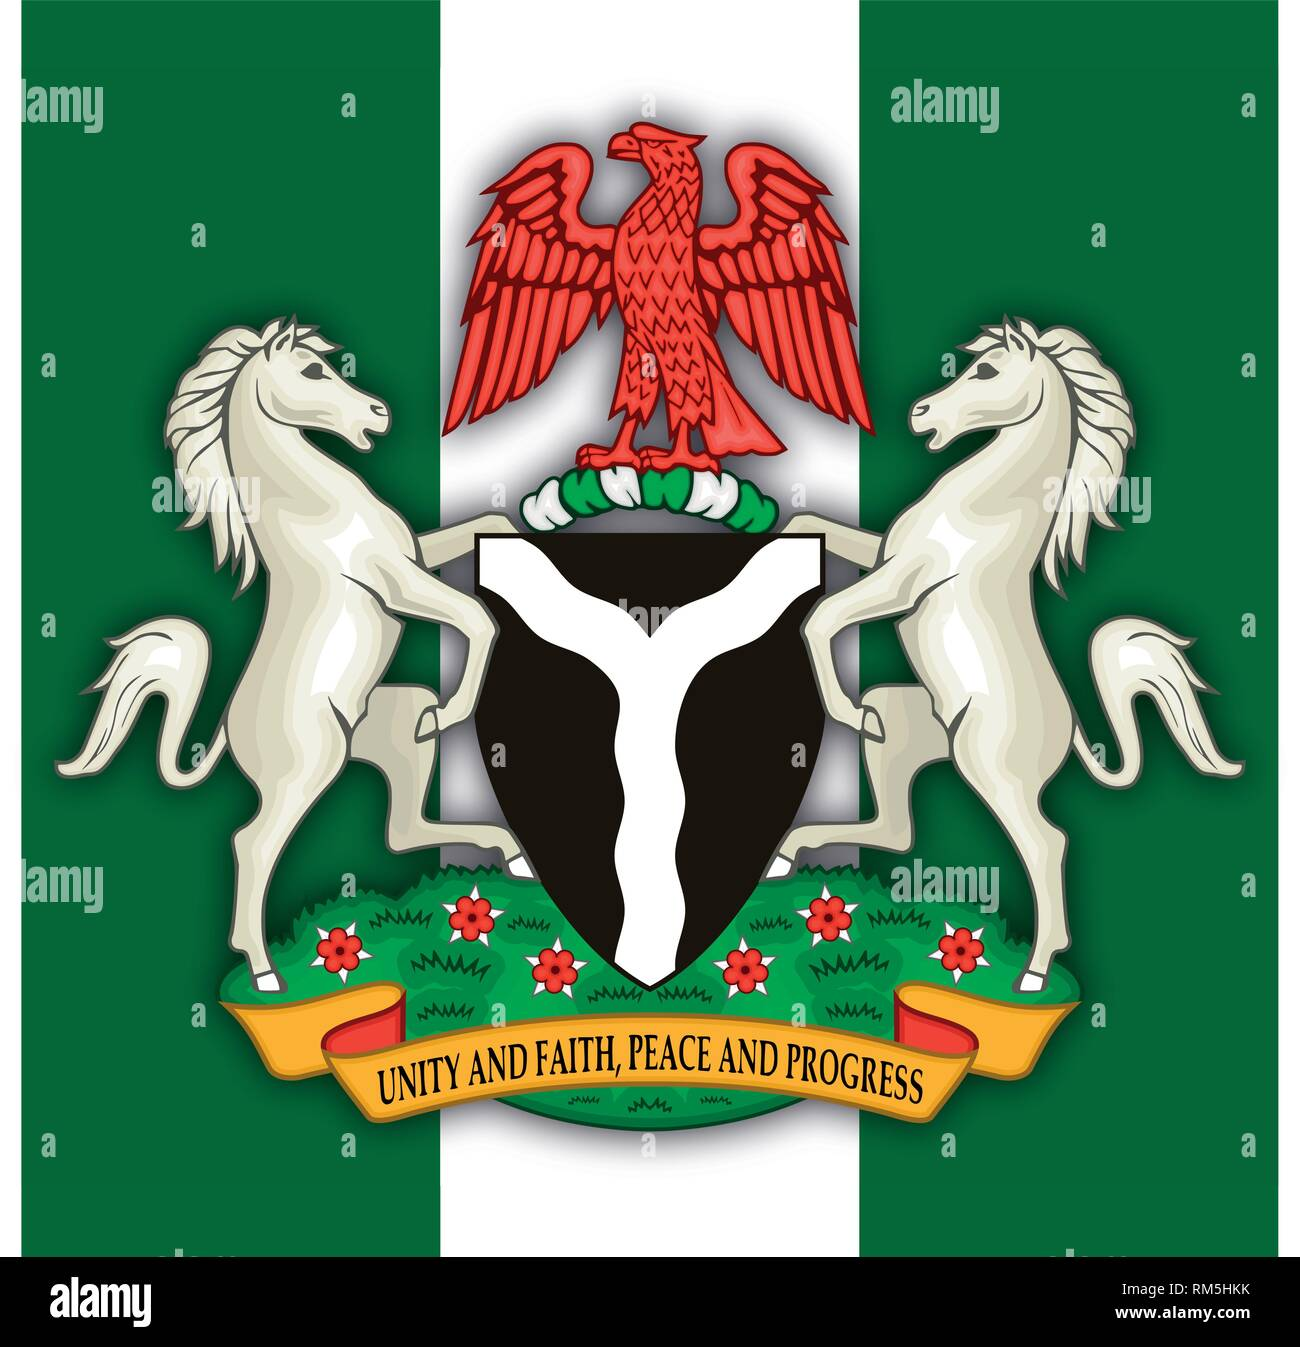 Nigeria Federal Republic coat of arms and flag, vector illustration - Stock Vector